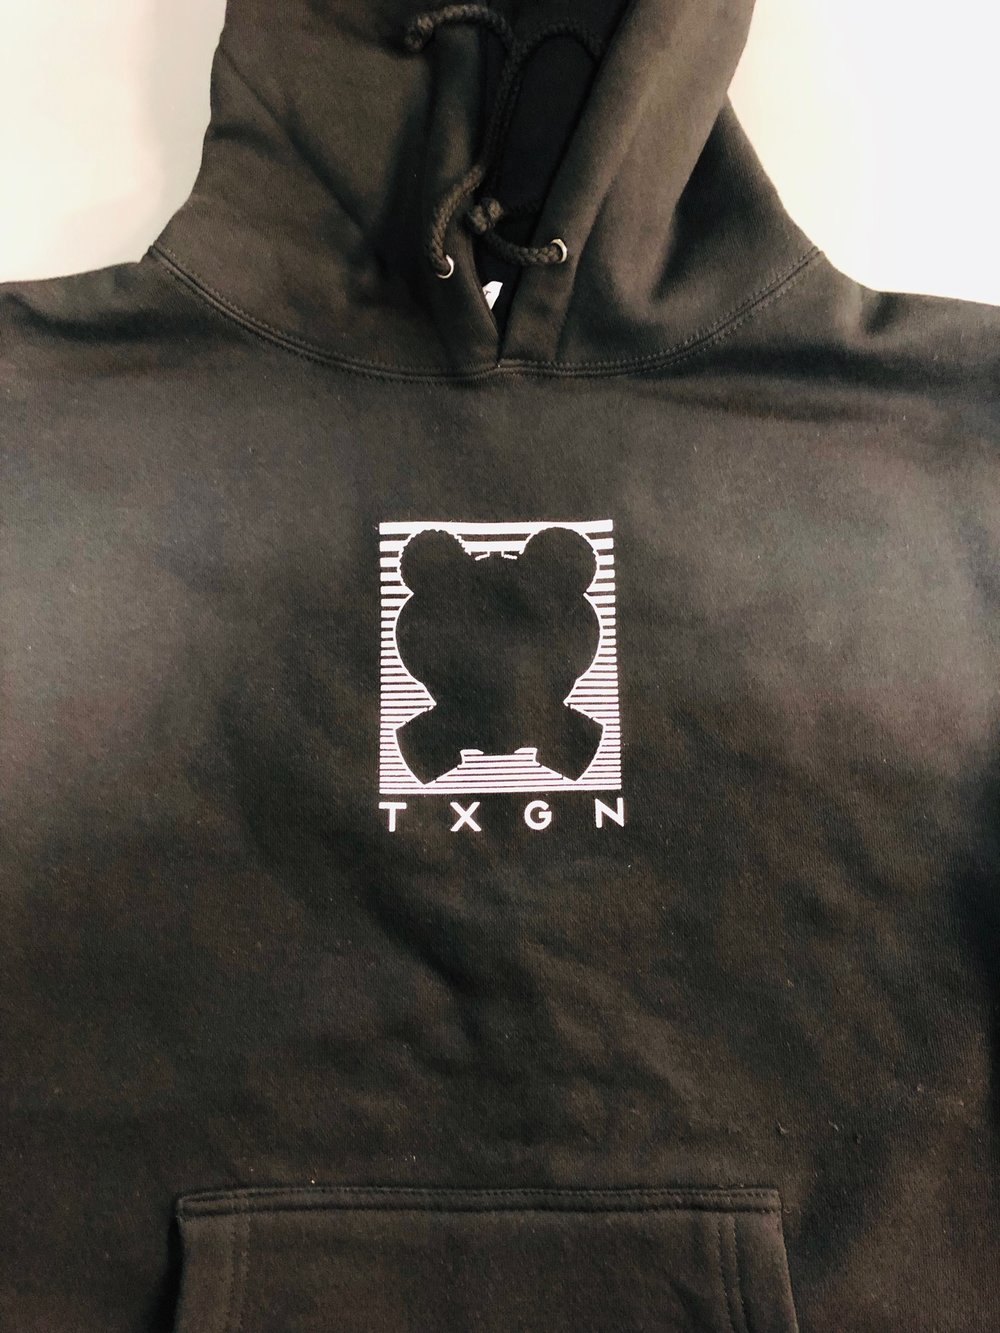 logounltd_laser_etching_embroidery_screen_printing_apparel_uniform_custom_tshirts_kirkland_bellevue_seattle_redmond_woodinville_branded_merchandise_promotional_products_logo_unltd_hoodies_toxygen (5).JPG